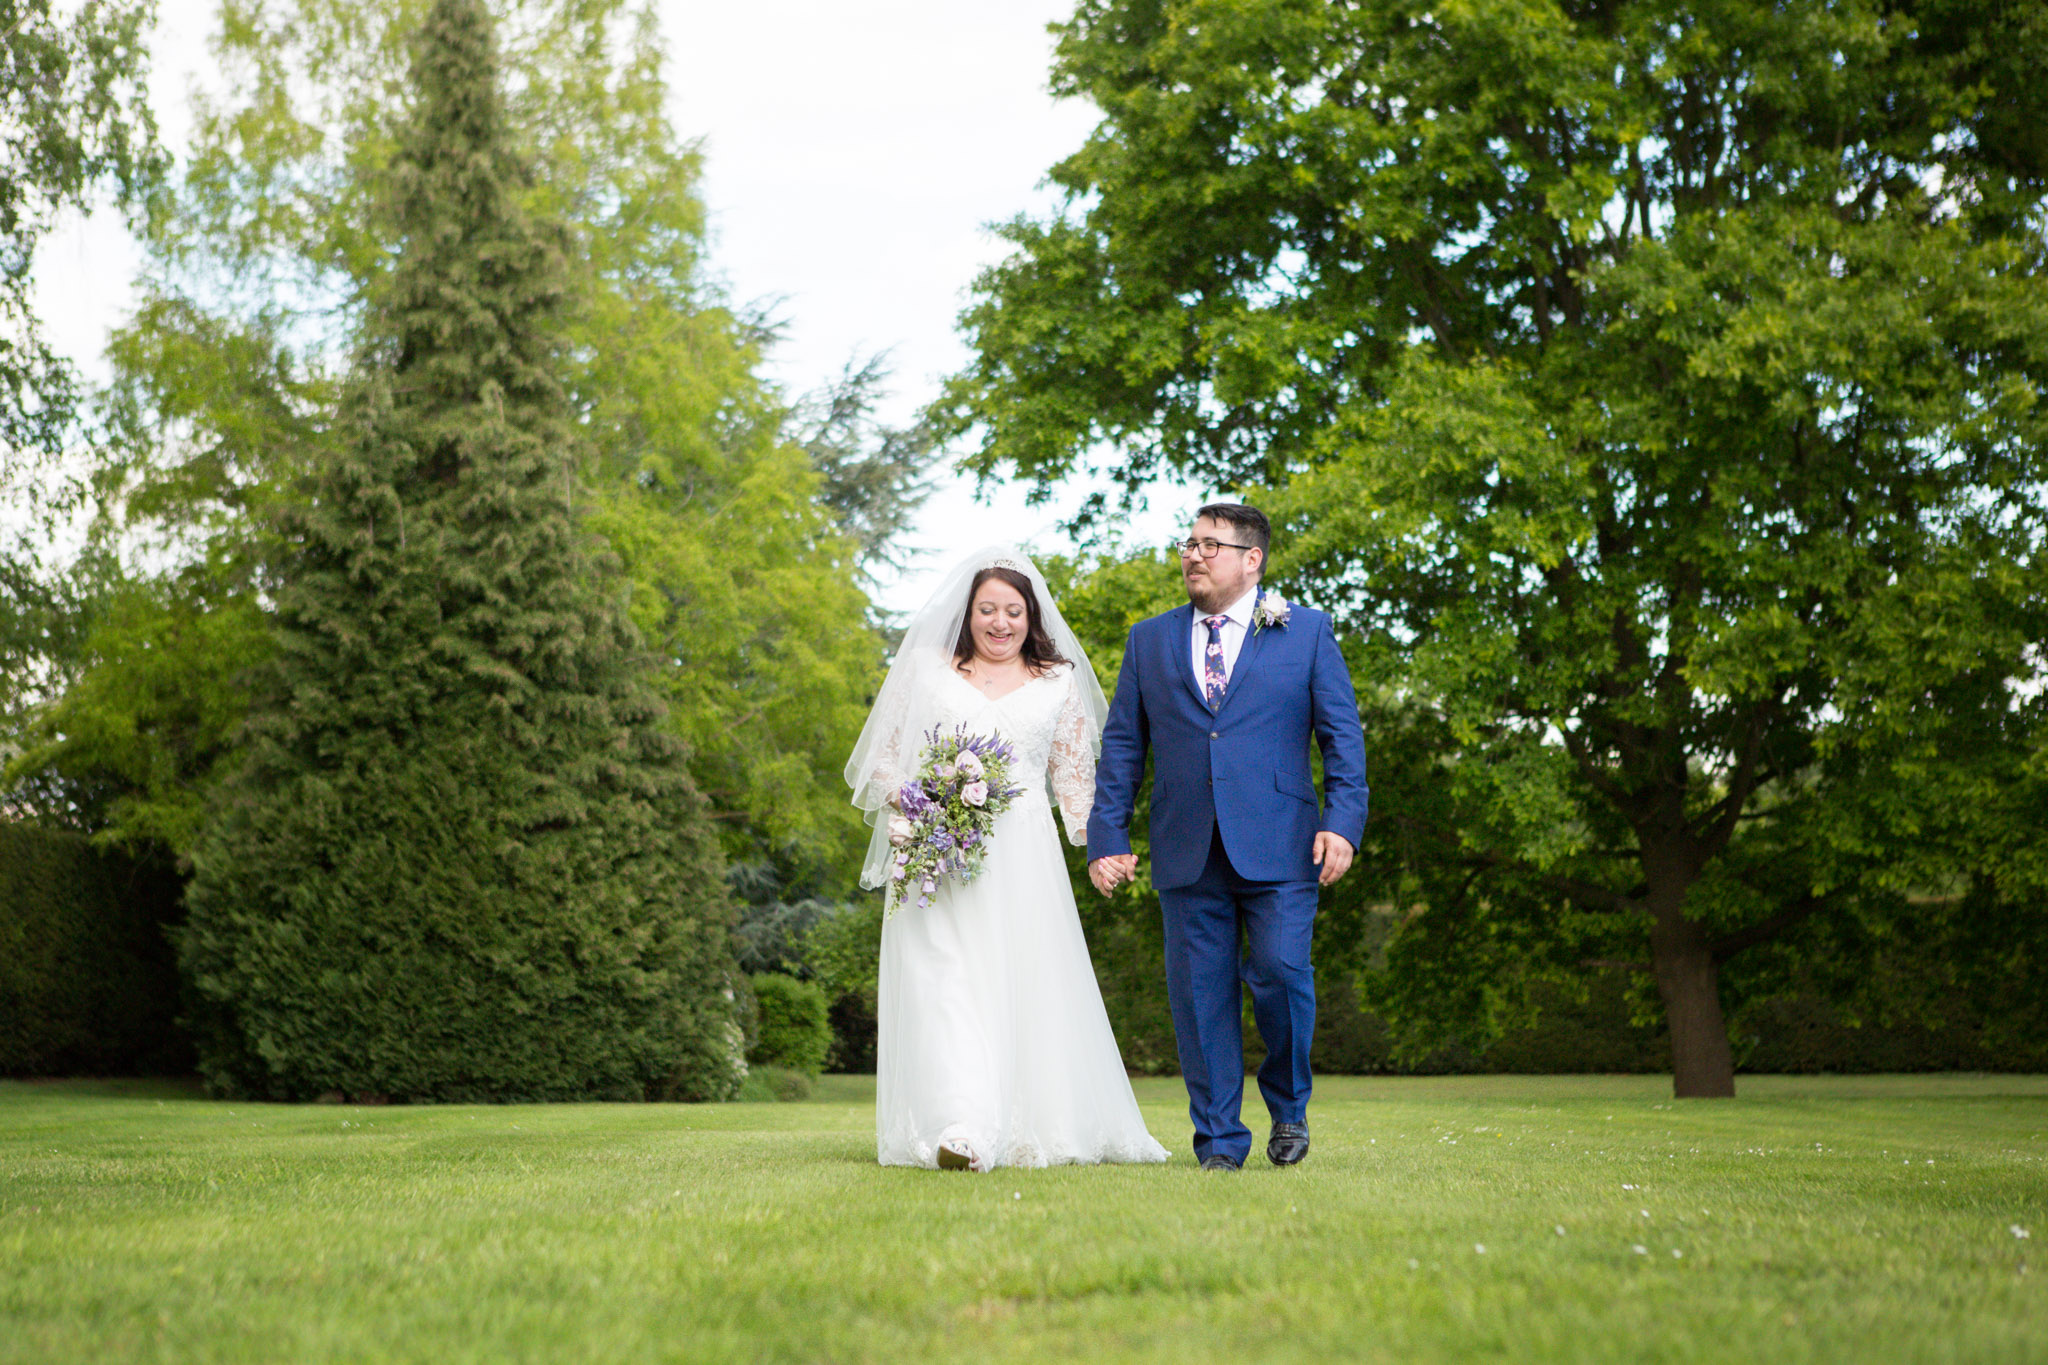 Couple walking in grounds of Oaks Farm Shirley on wedding day